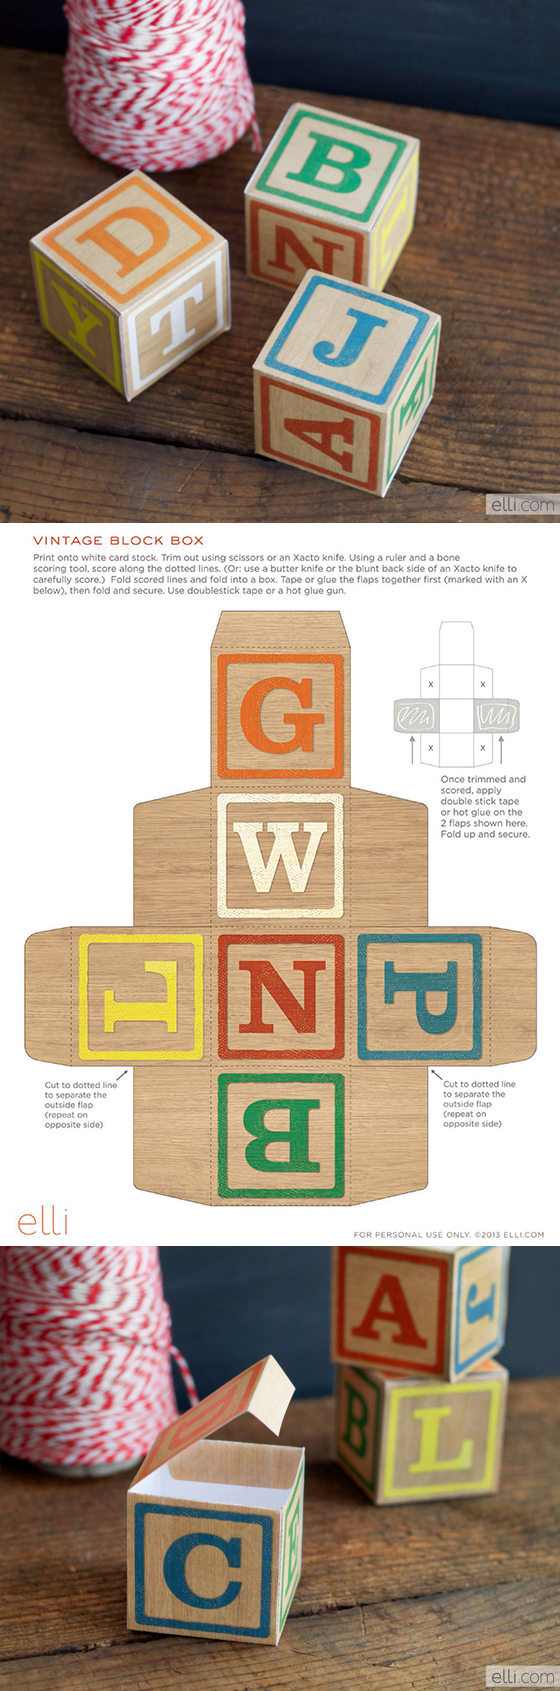 Alphabet Block Boxes  Free Template From The Elli Blog  Montessori